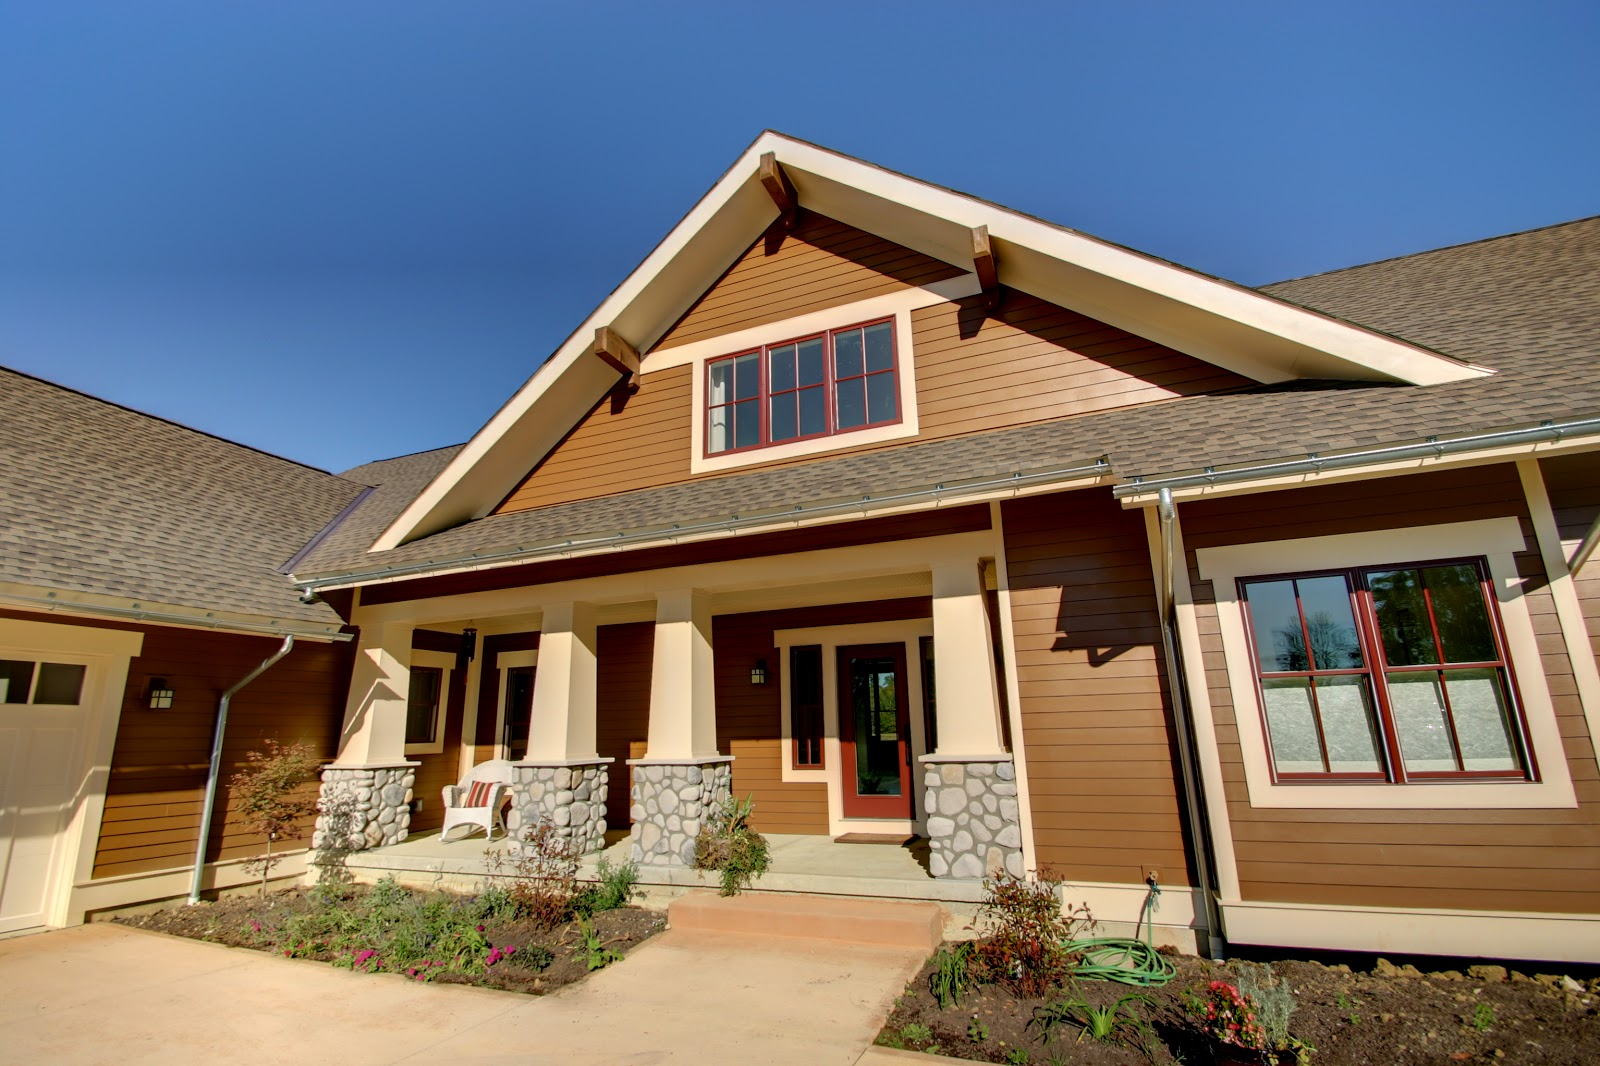 Knock knock an architect 39 s blog for homeowners who care for Craftsman home